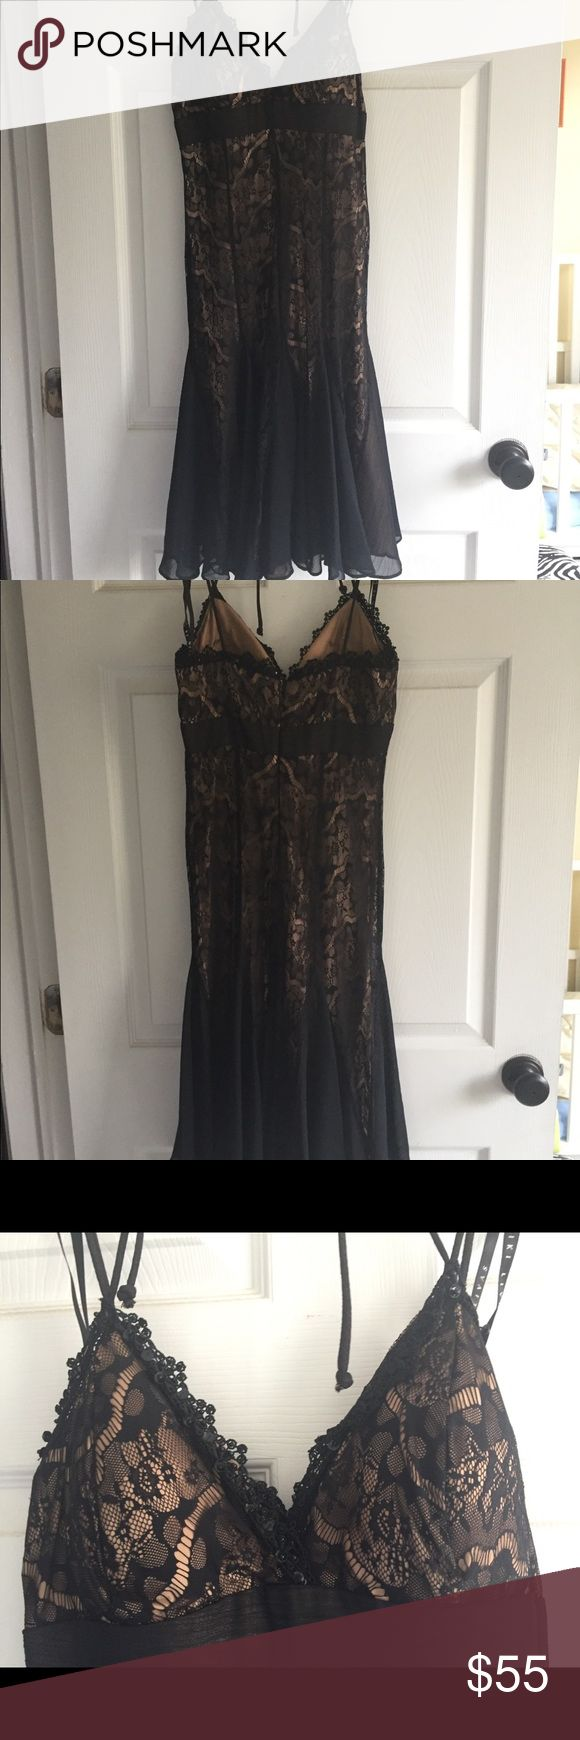 Dress size 2 Spaghetti stripe, lace, black on nude, cocktail dress warned only one time. Niki Lavis Dresses Midi